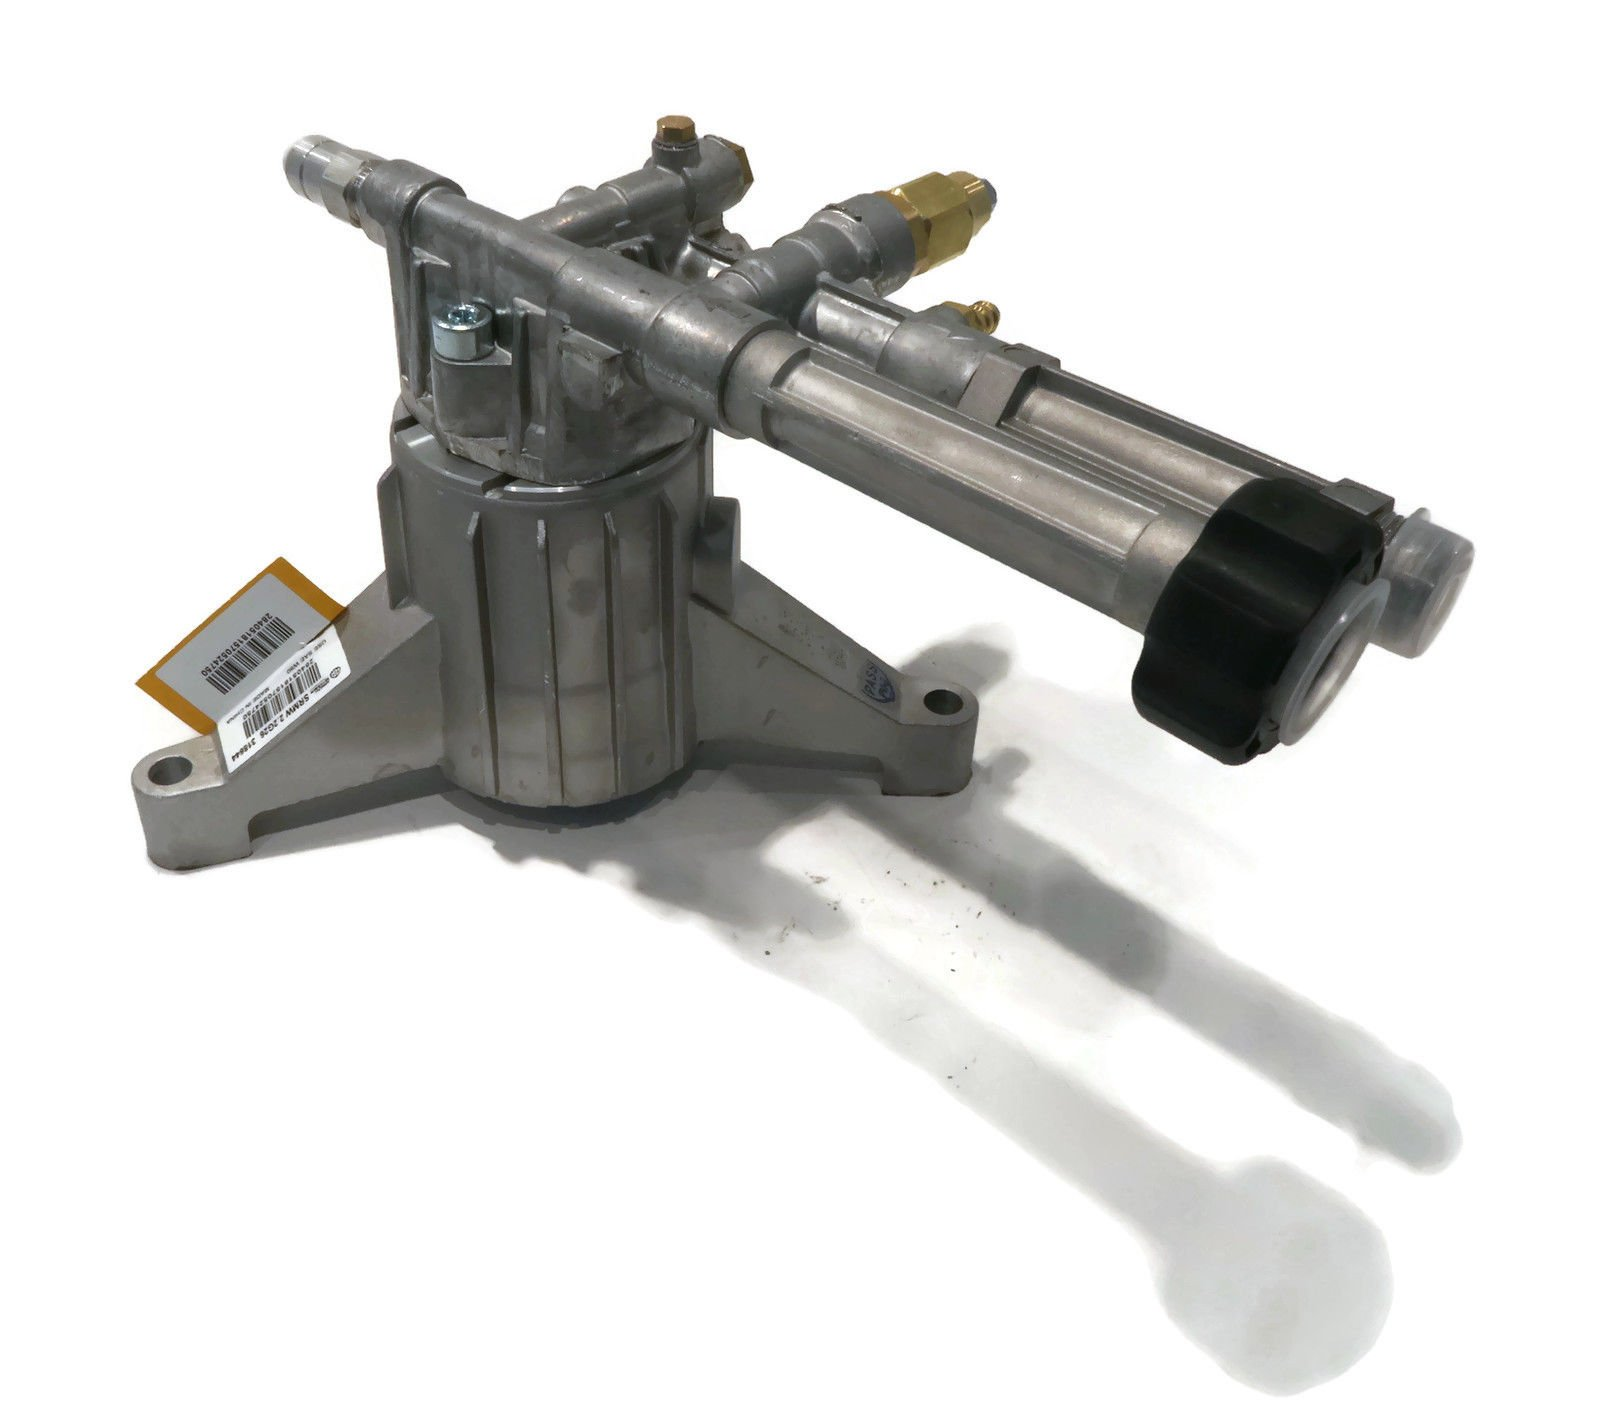 The ROP Shop New OEM AR 2600 psi Power Pressure Washer Water Pump Troy-Bilt 020415 020415-0 by The ROP Shop